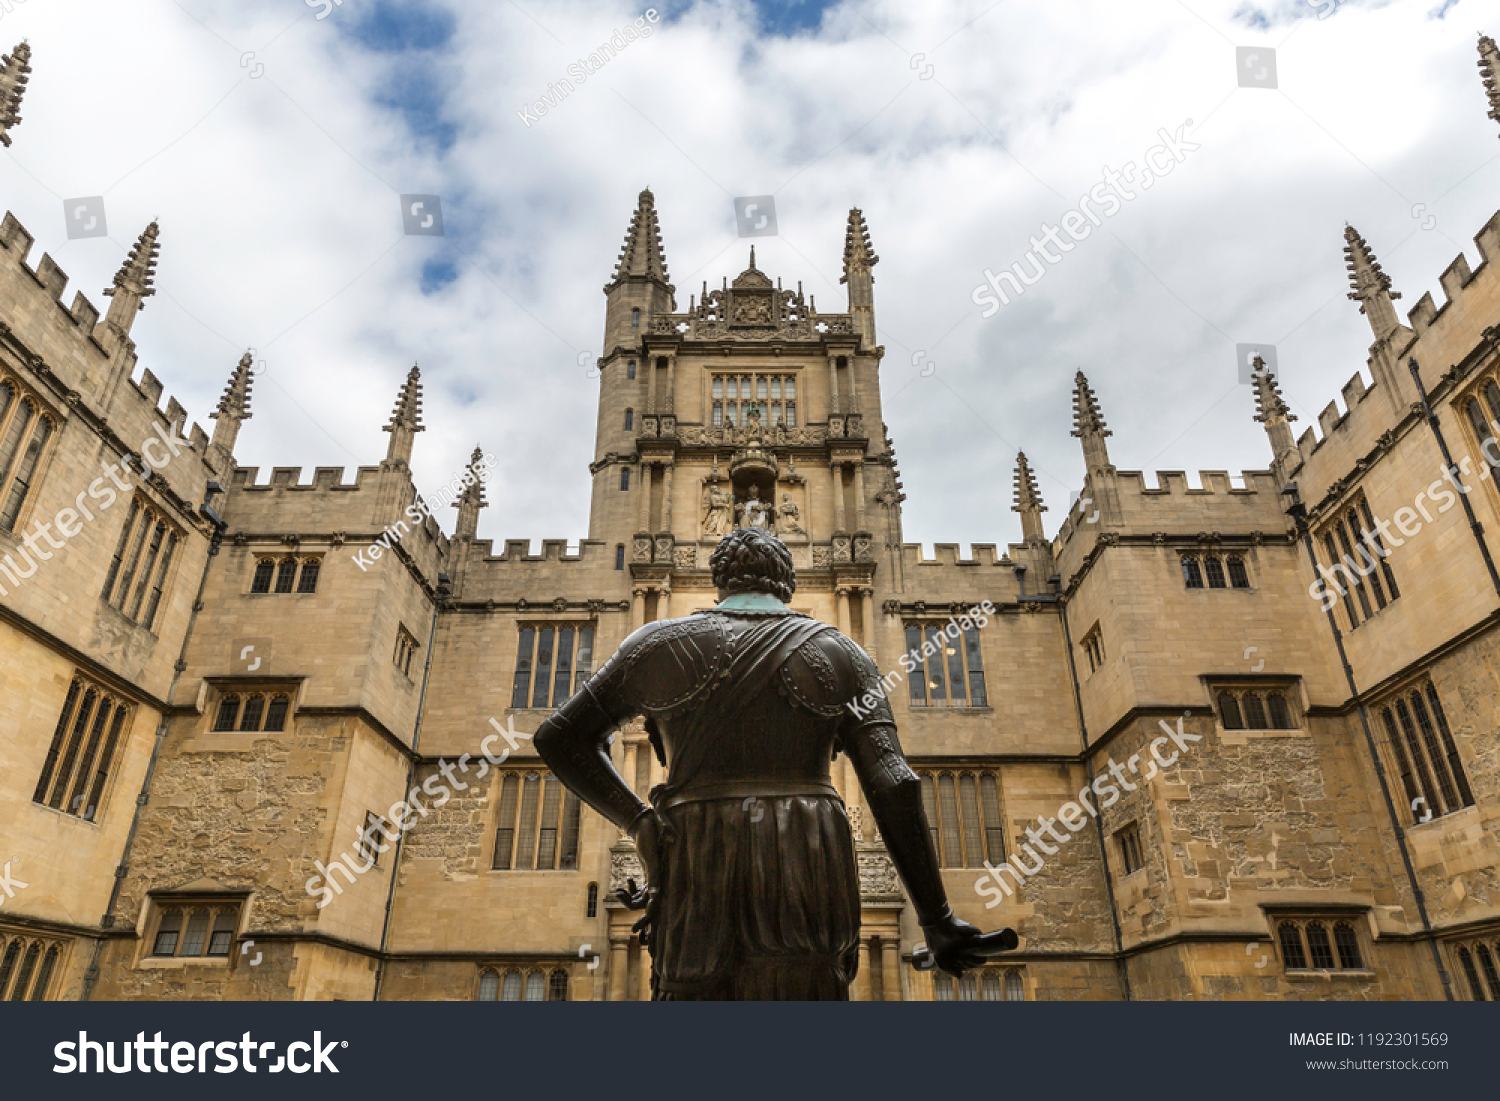 Oxford, Oxon, England - April 18 2016 : Statue of William Herbert, 3rd Earl of Pembroke, one-time Chancellor of Oxford University (1580-1630) in the Old Schools Quad of the Bodleian Library, Oxford.